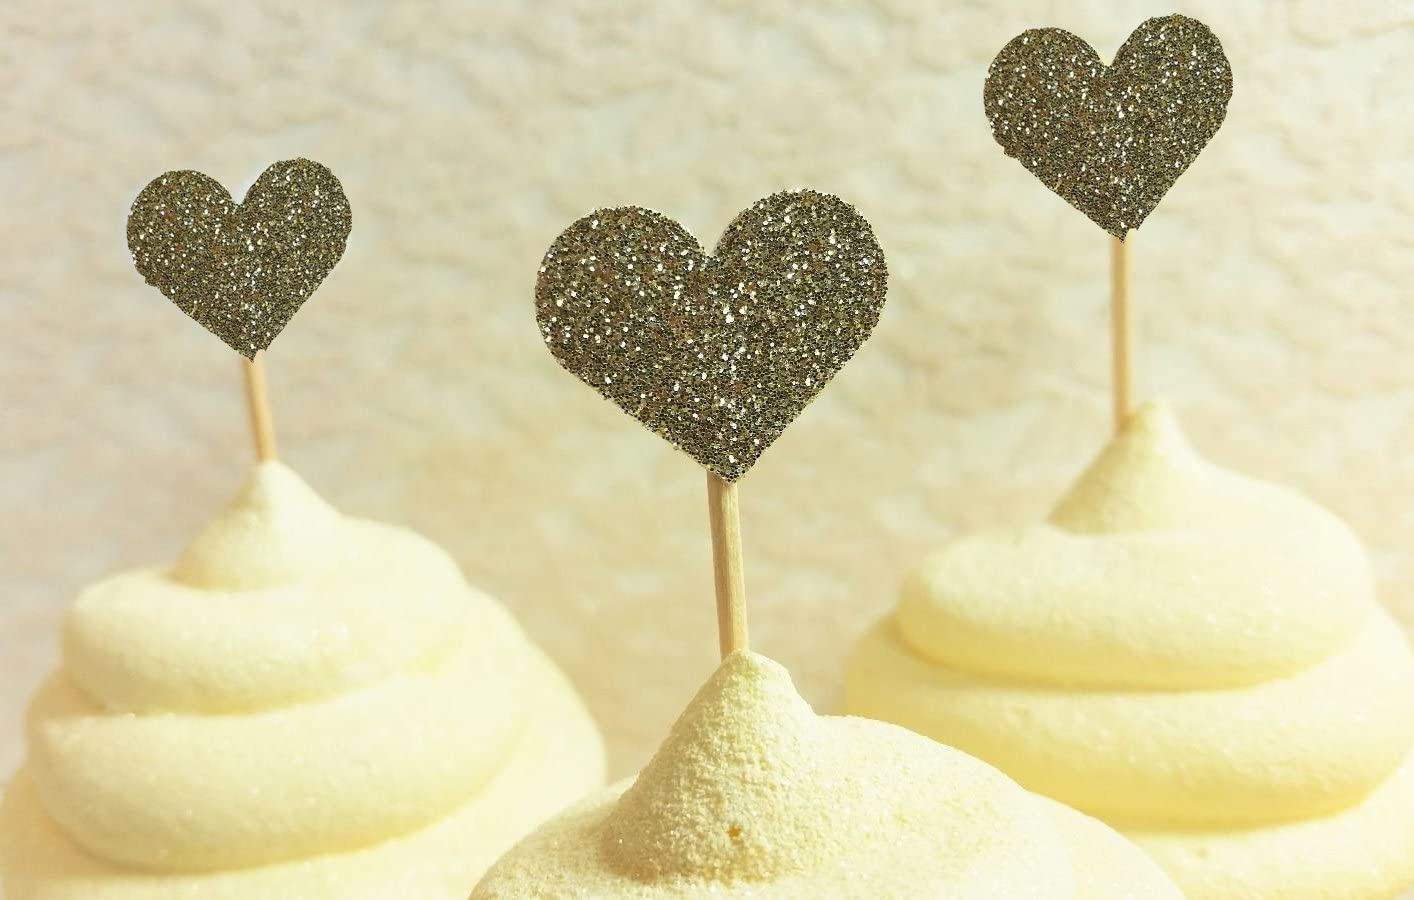 40PCS IFfree Best Heart Cupcake Toppers Bridal or Baby Shower Gold Glitter Heart Large Cupcake Toppers Golden Wedding,Weddings COMINHKG103988